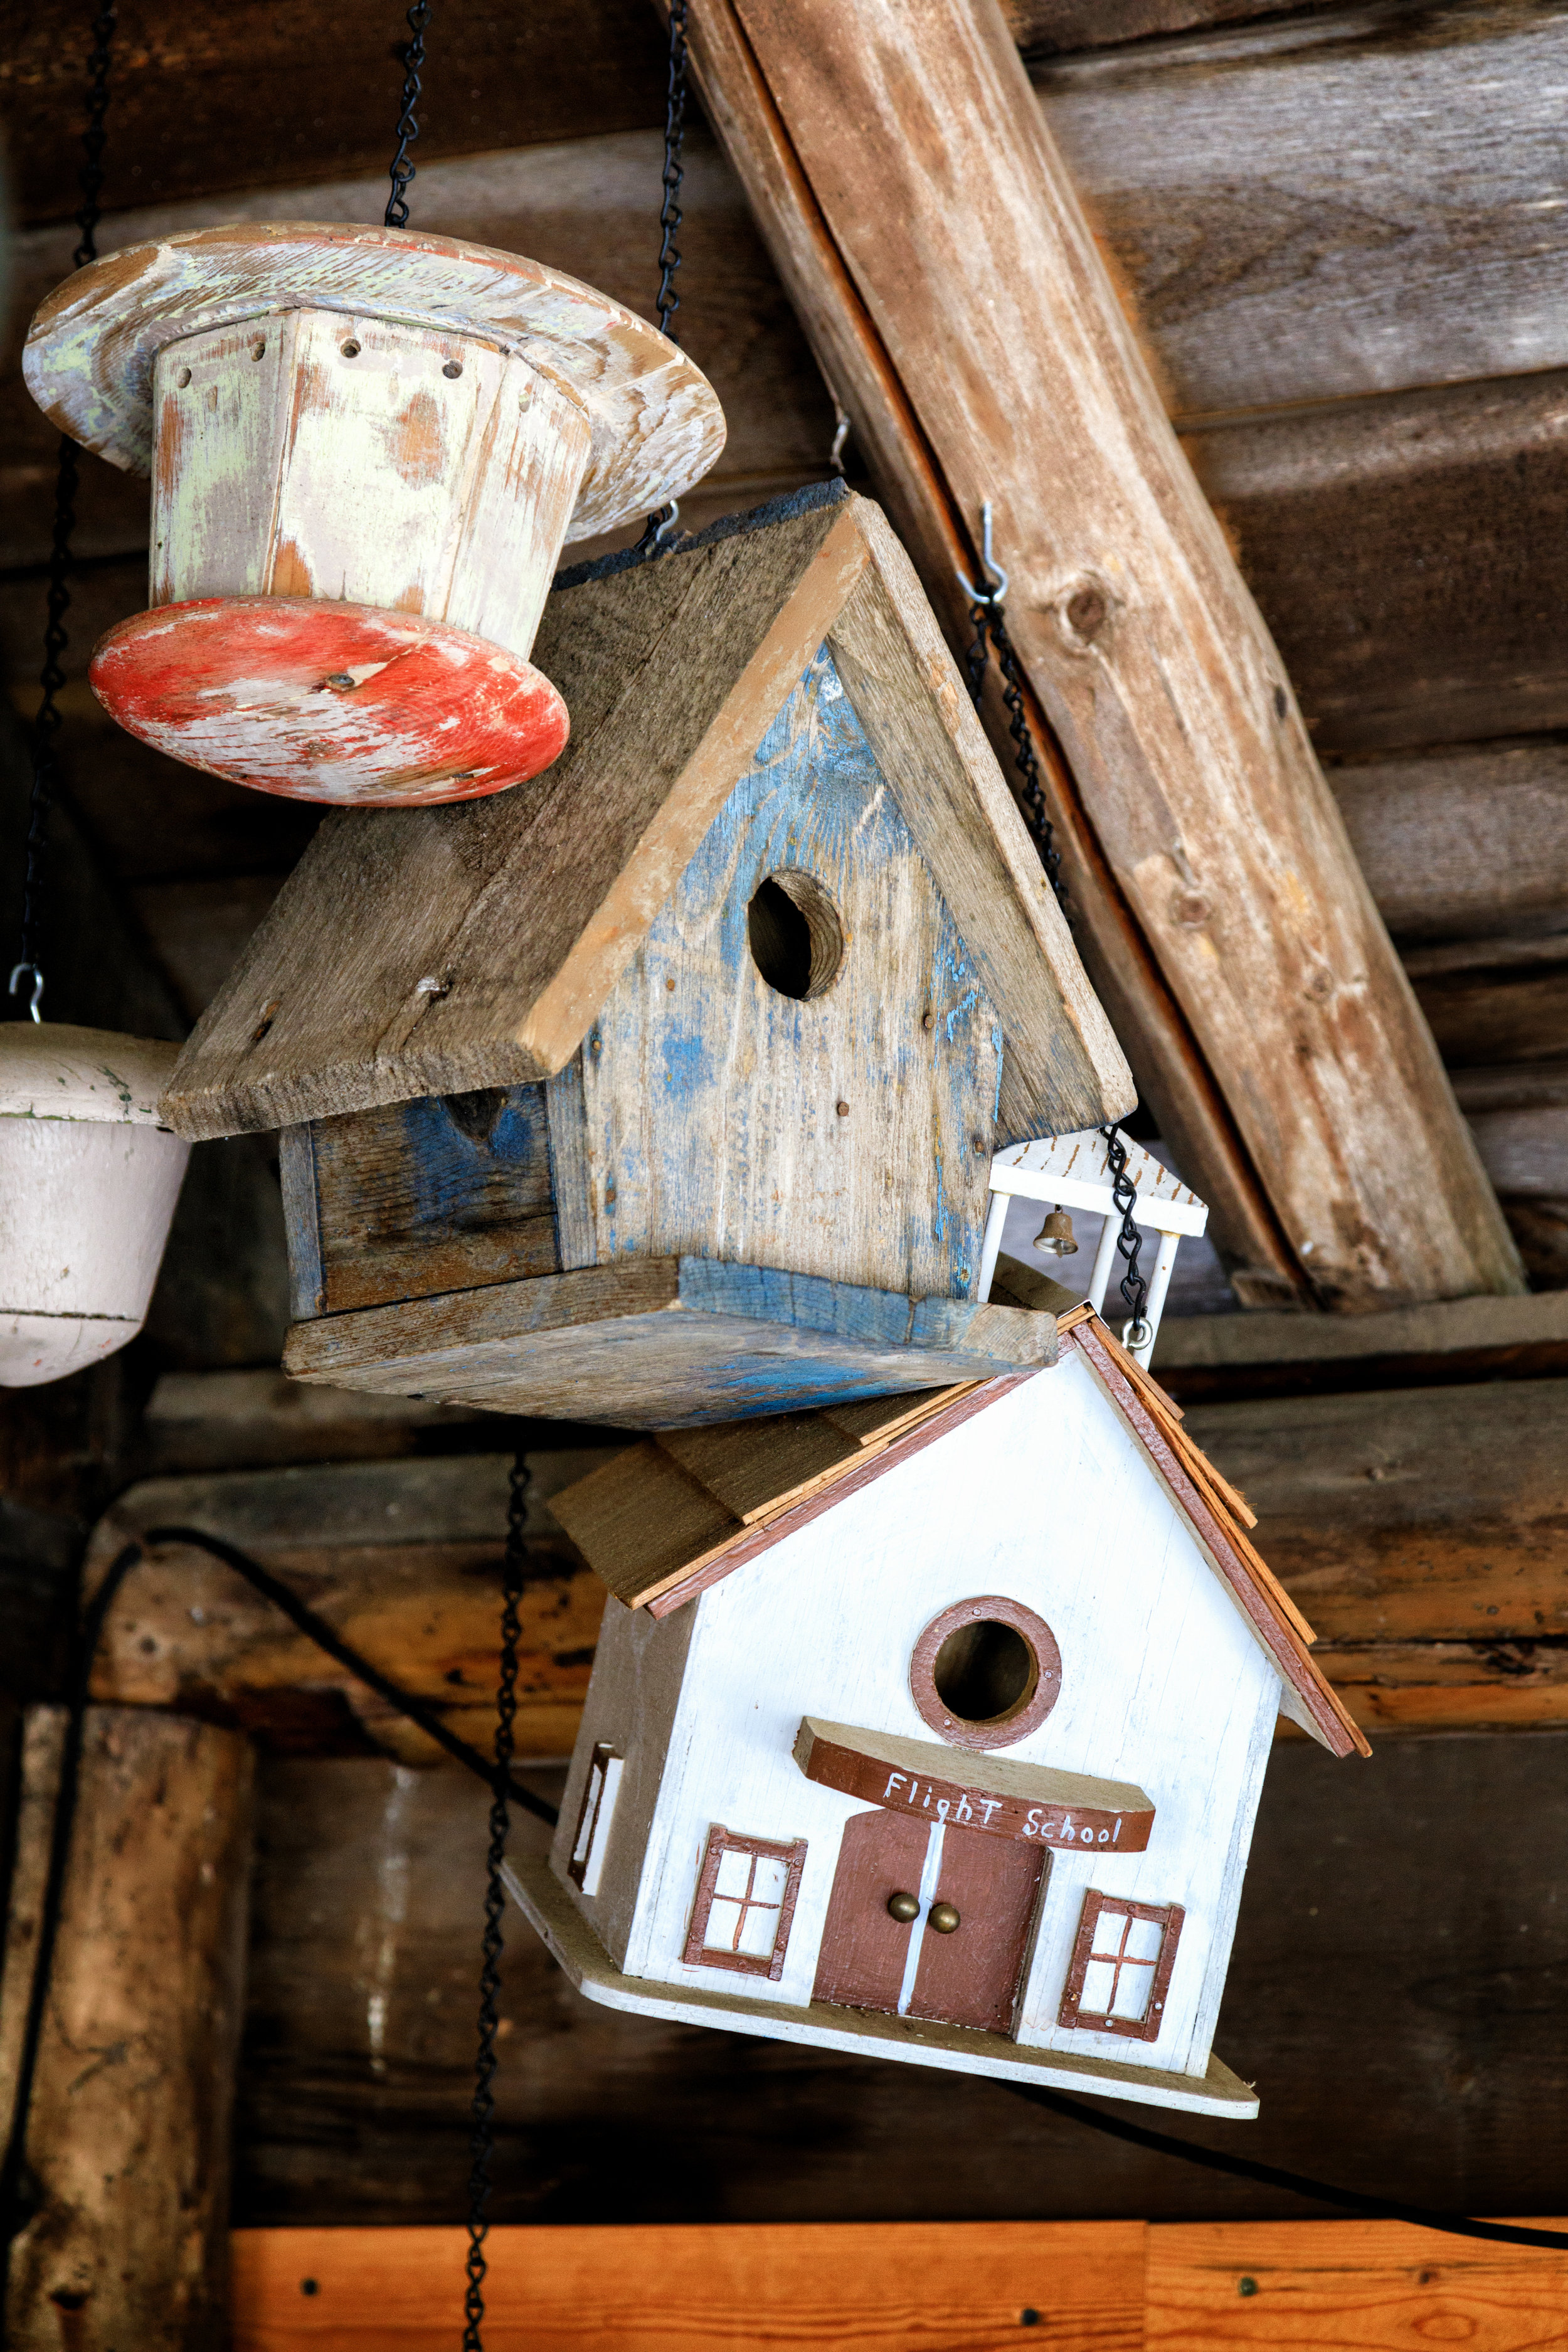 The family has been building birdhouses for some time.